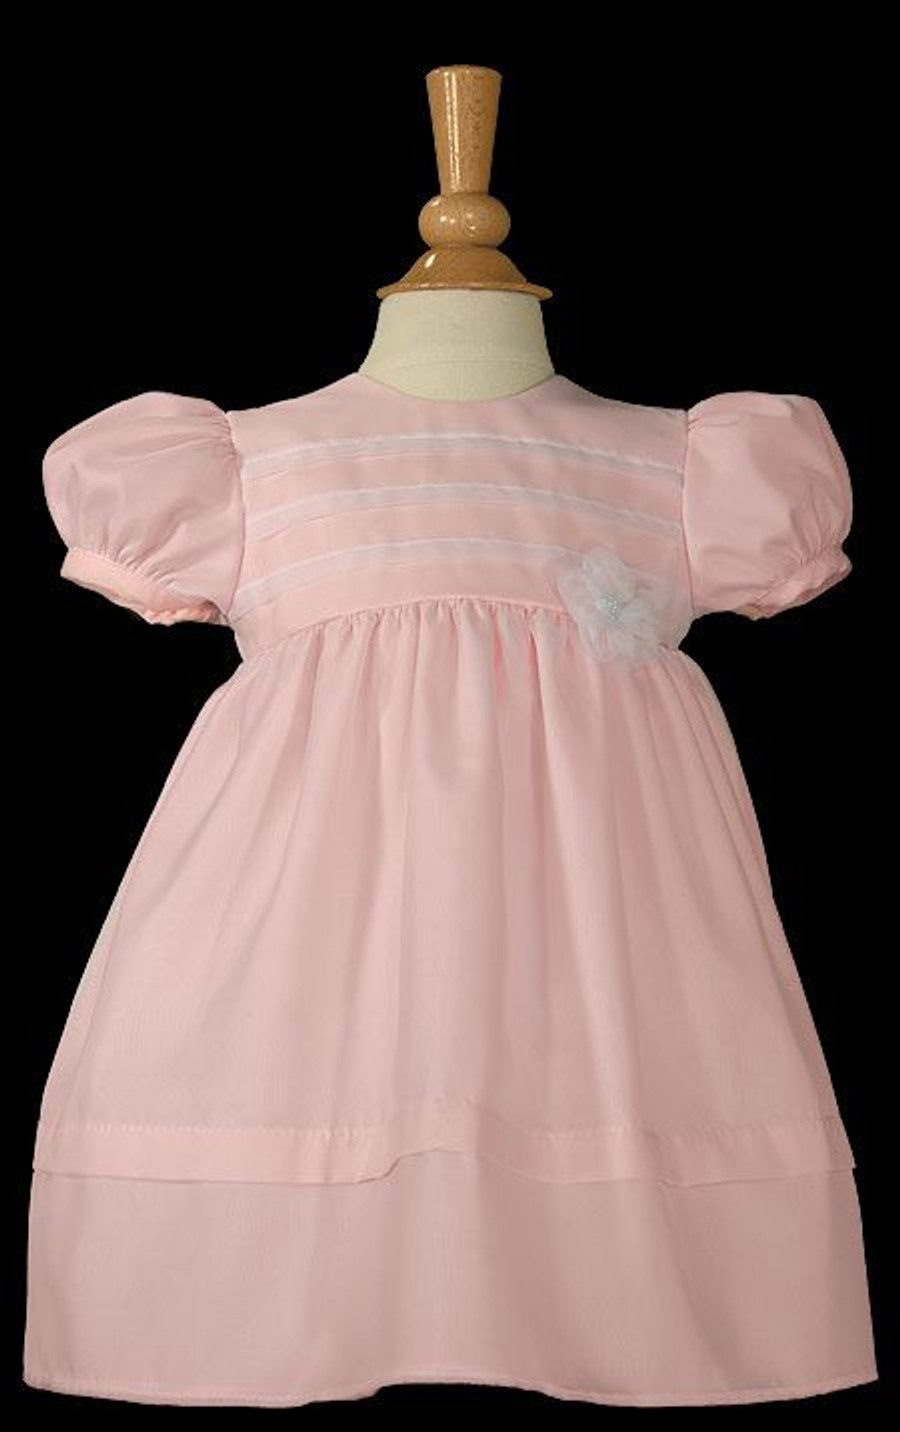 Pink Organza Overlay Christening Gown with Pin Tucking